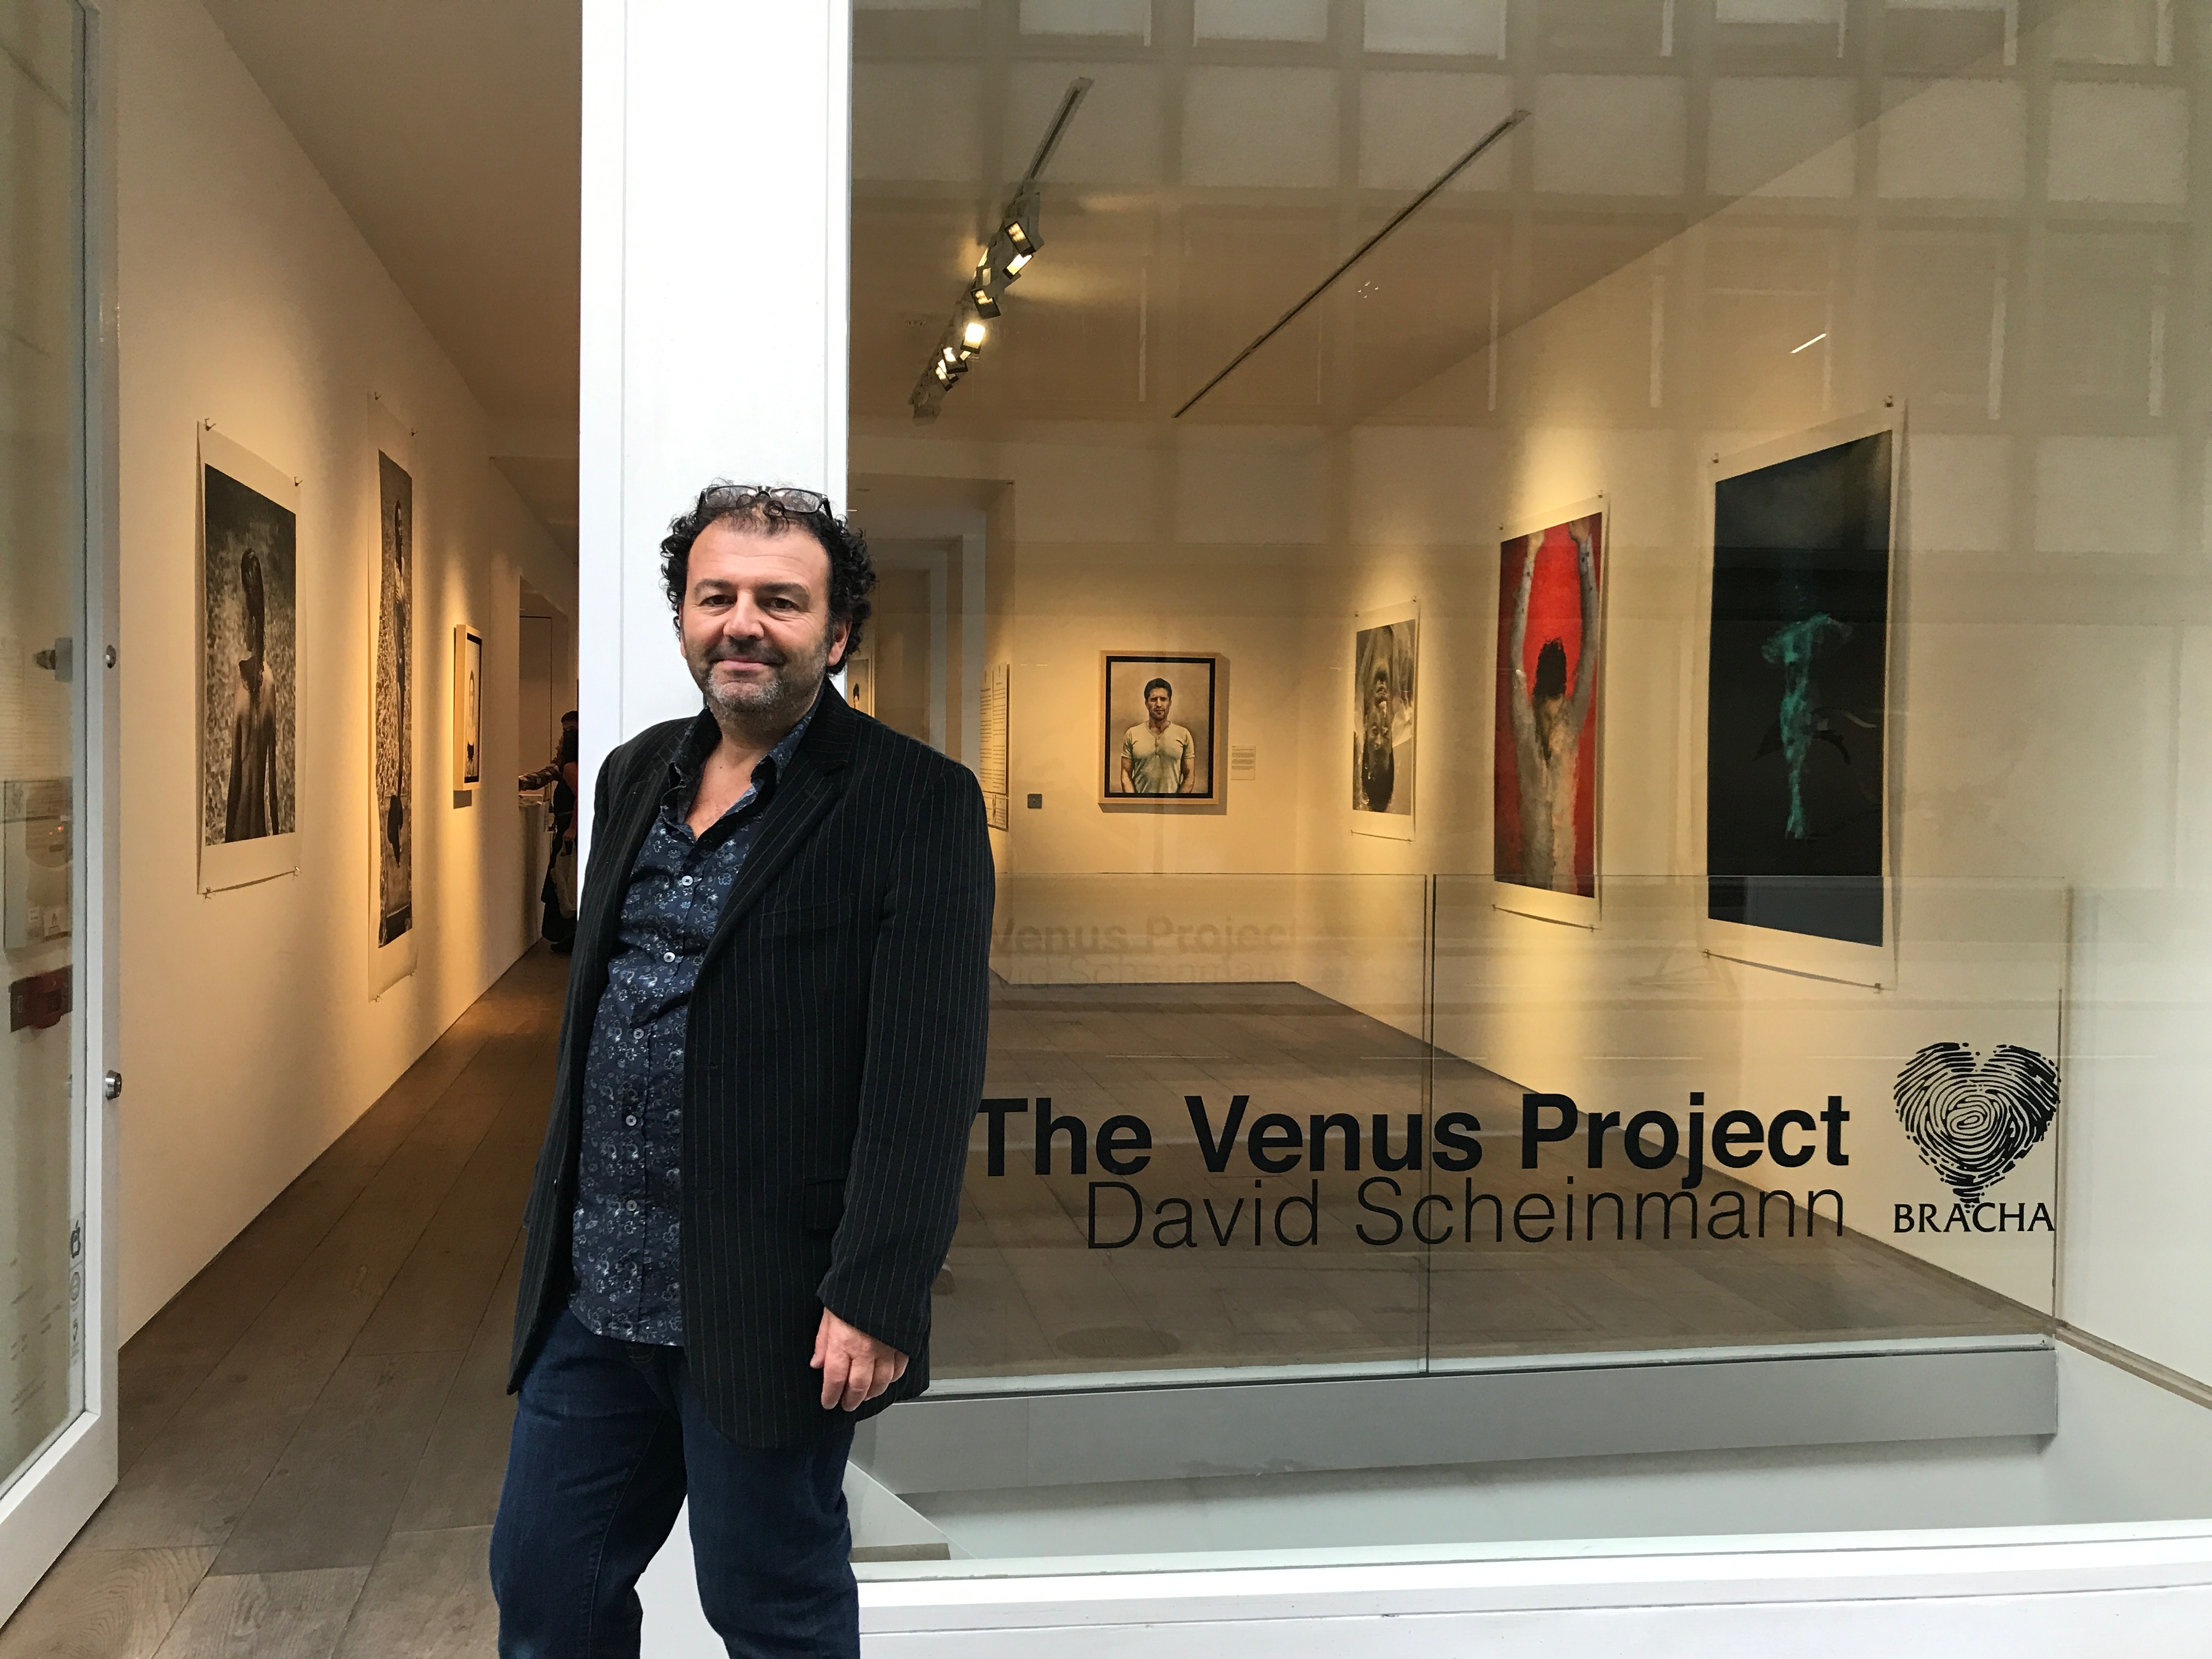 The Venus Project - David Scheinmann